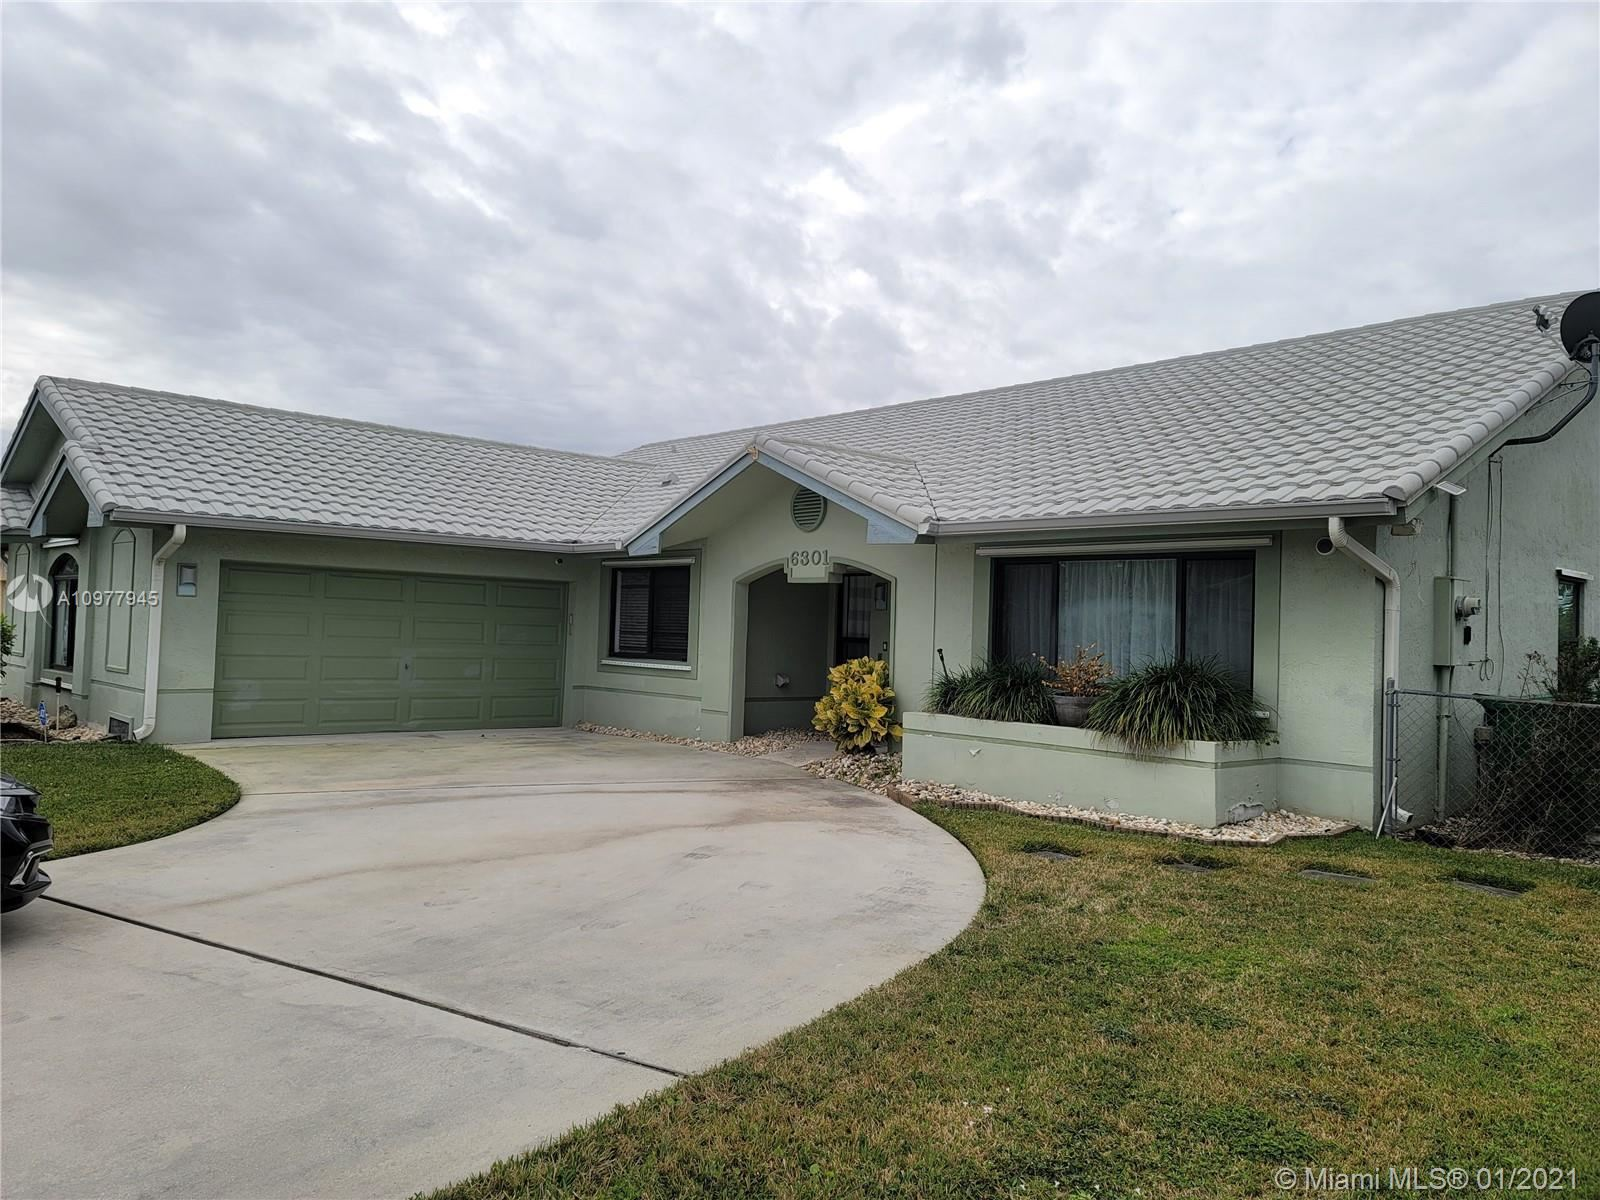 6301 Olde Moat Way, Davie, FL 33331 - #: A10977945